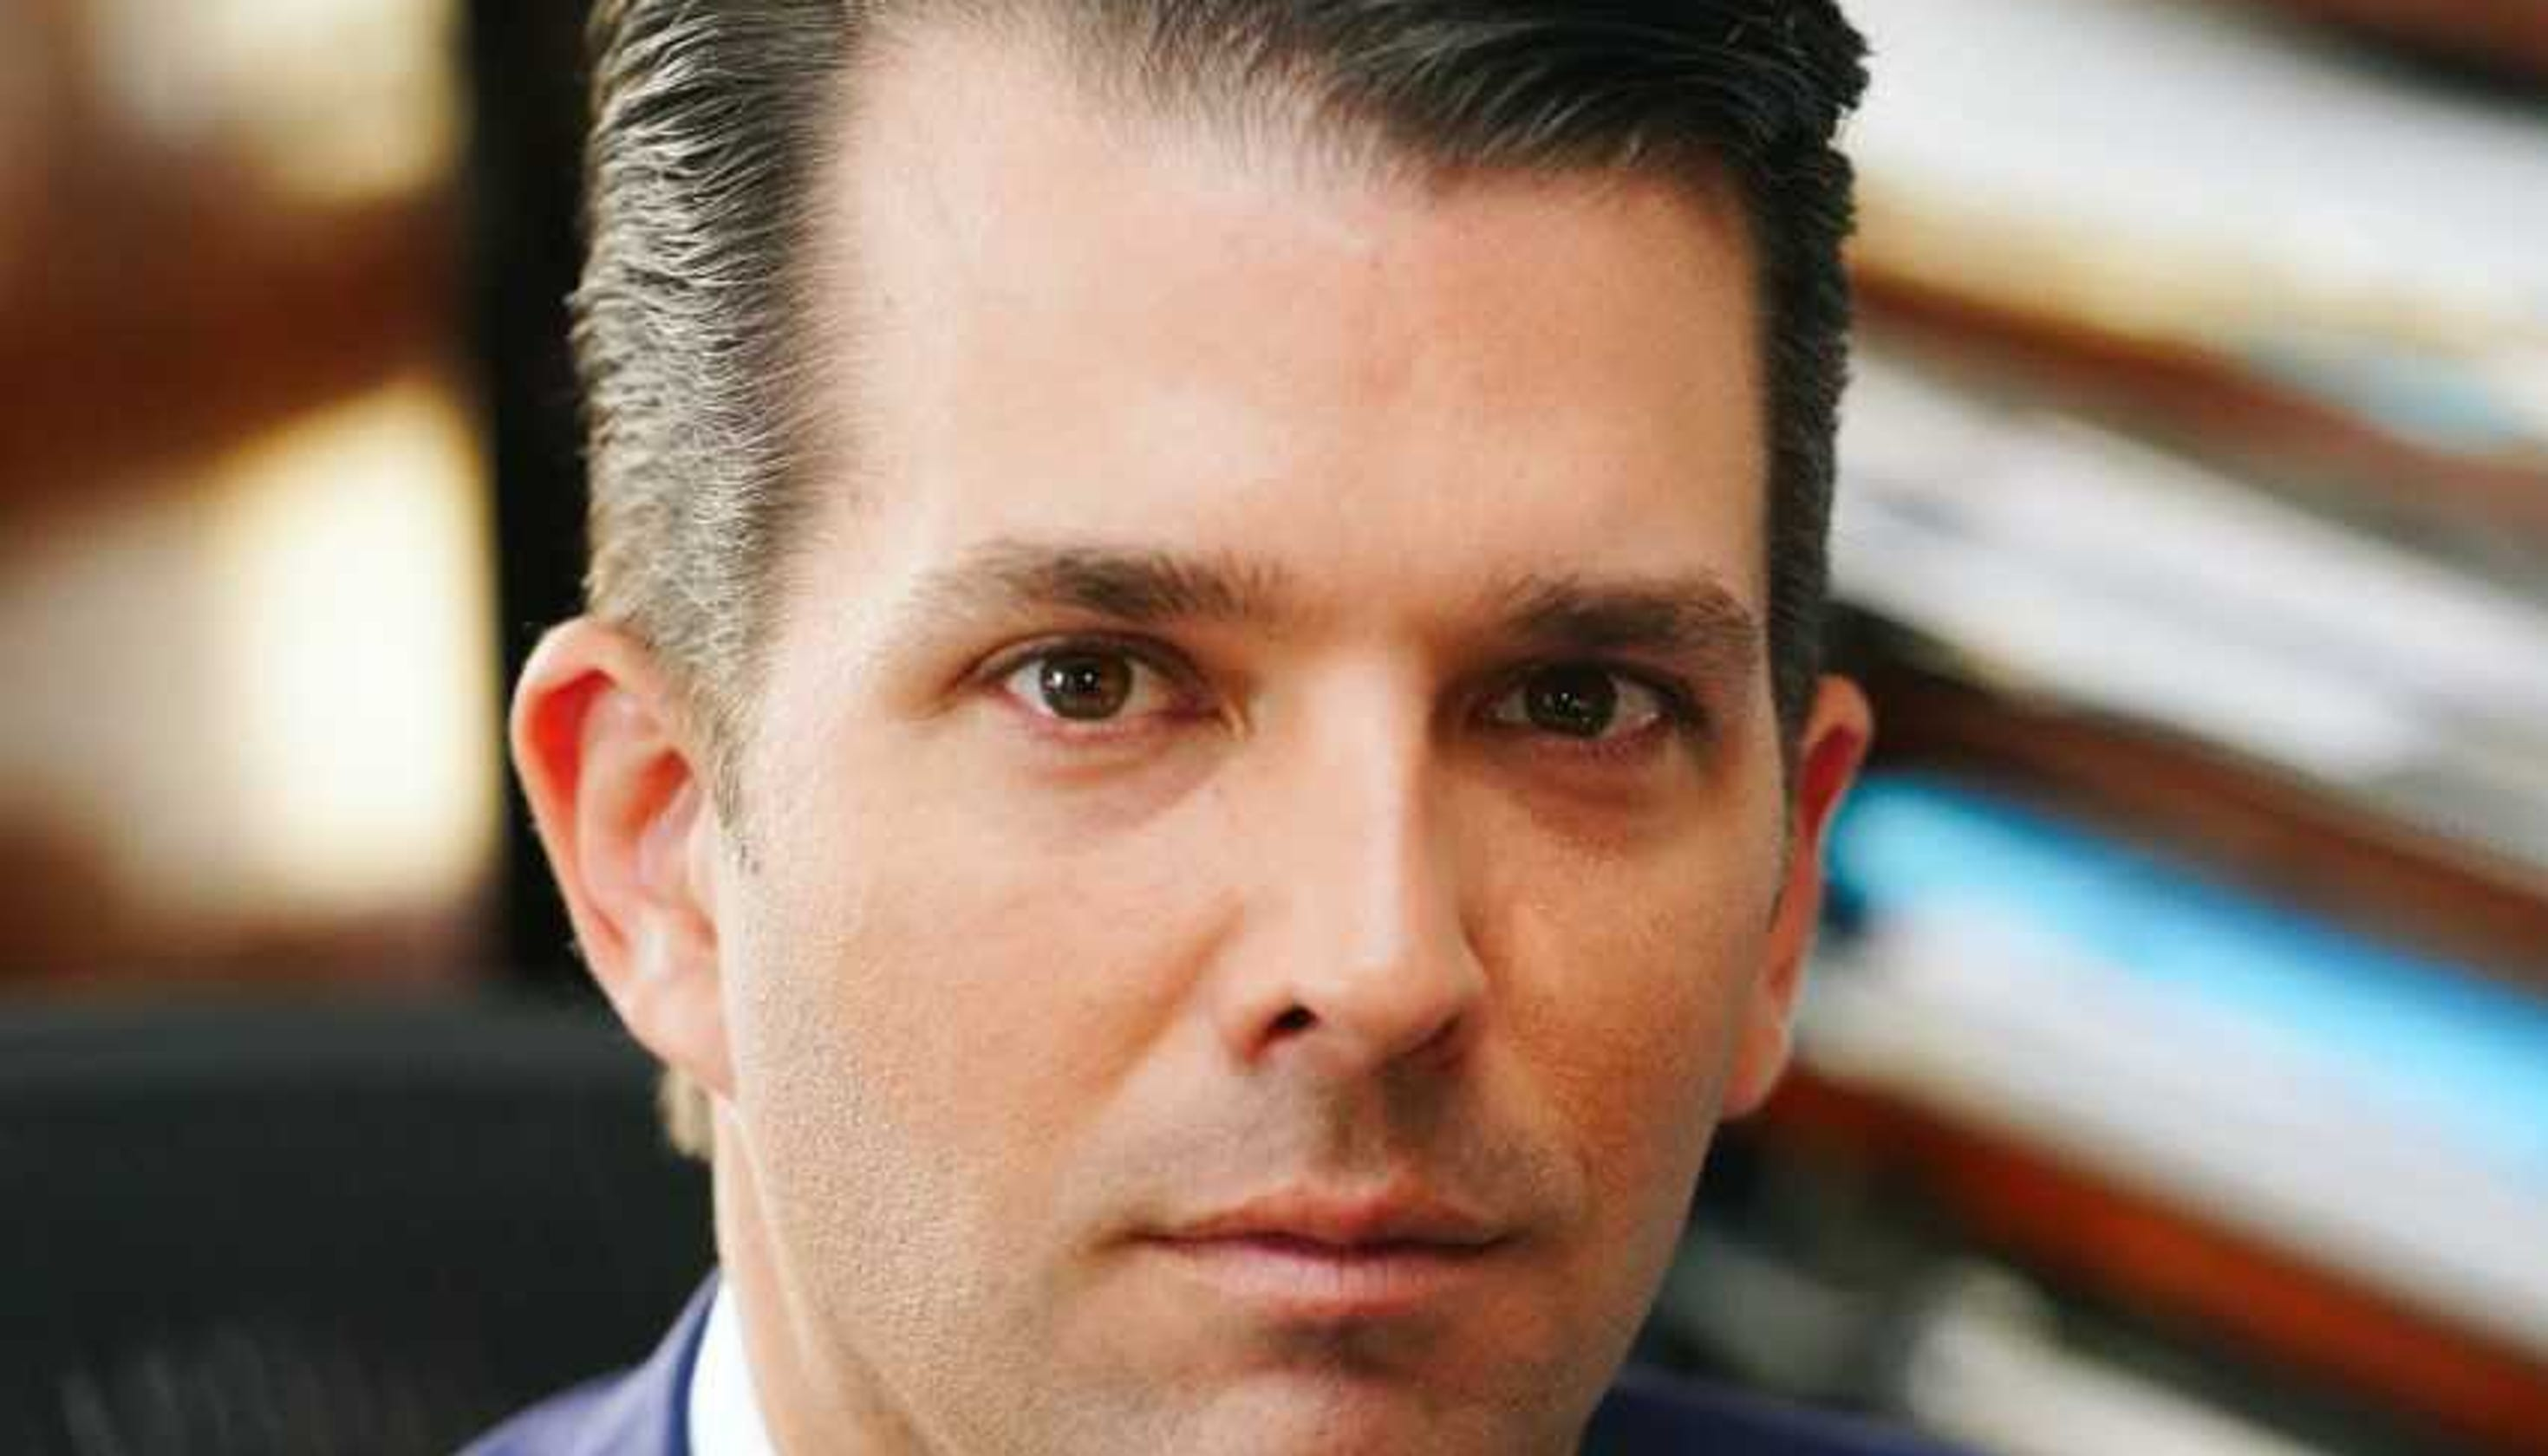 Springfield was on the 'brink of collapse,' Trump Jr. says